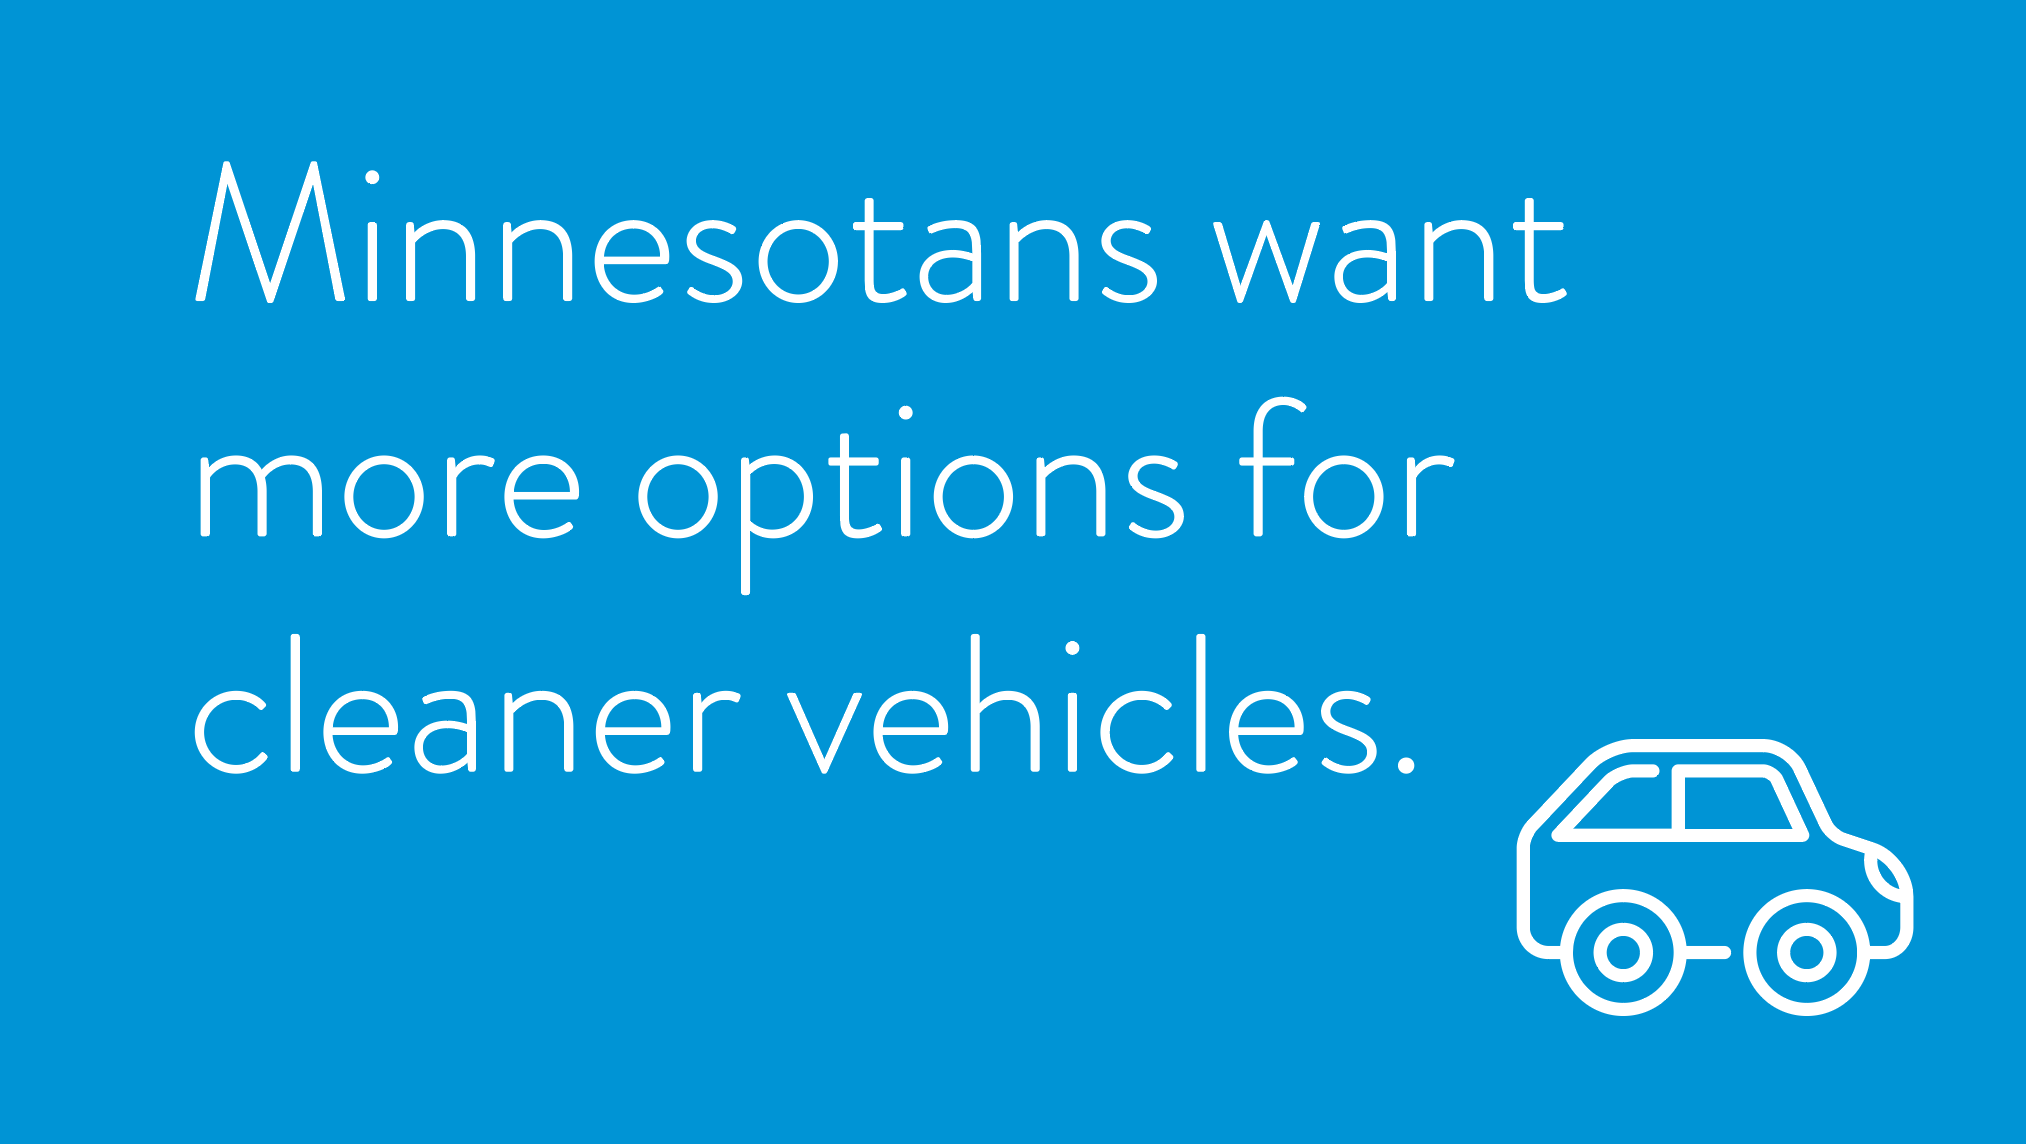 Minnesotans want more options for cleaner vehicles.